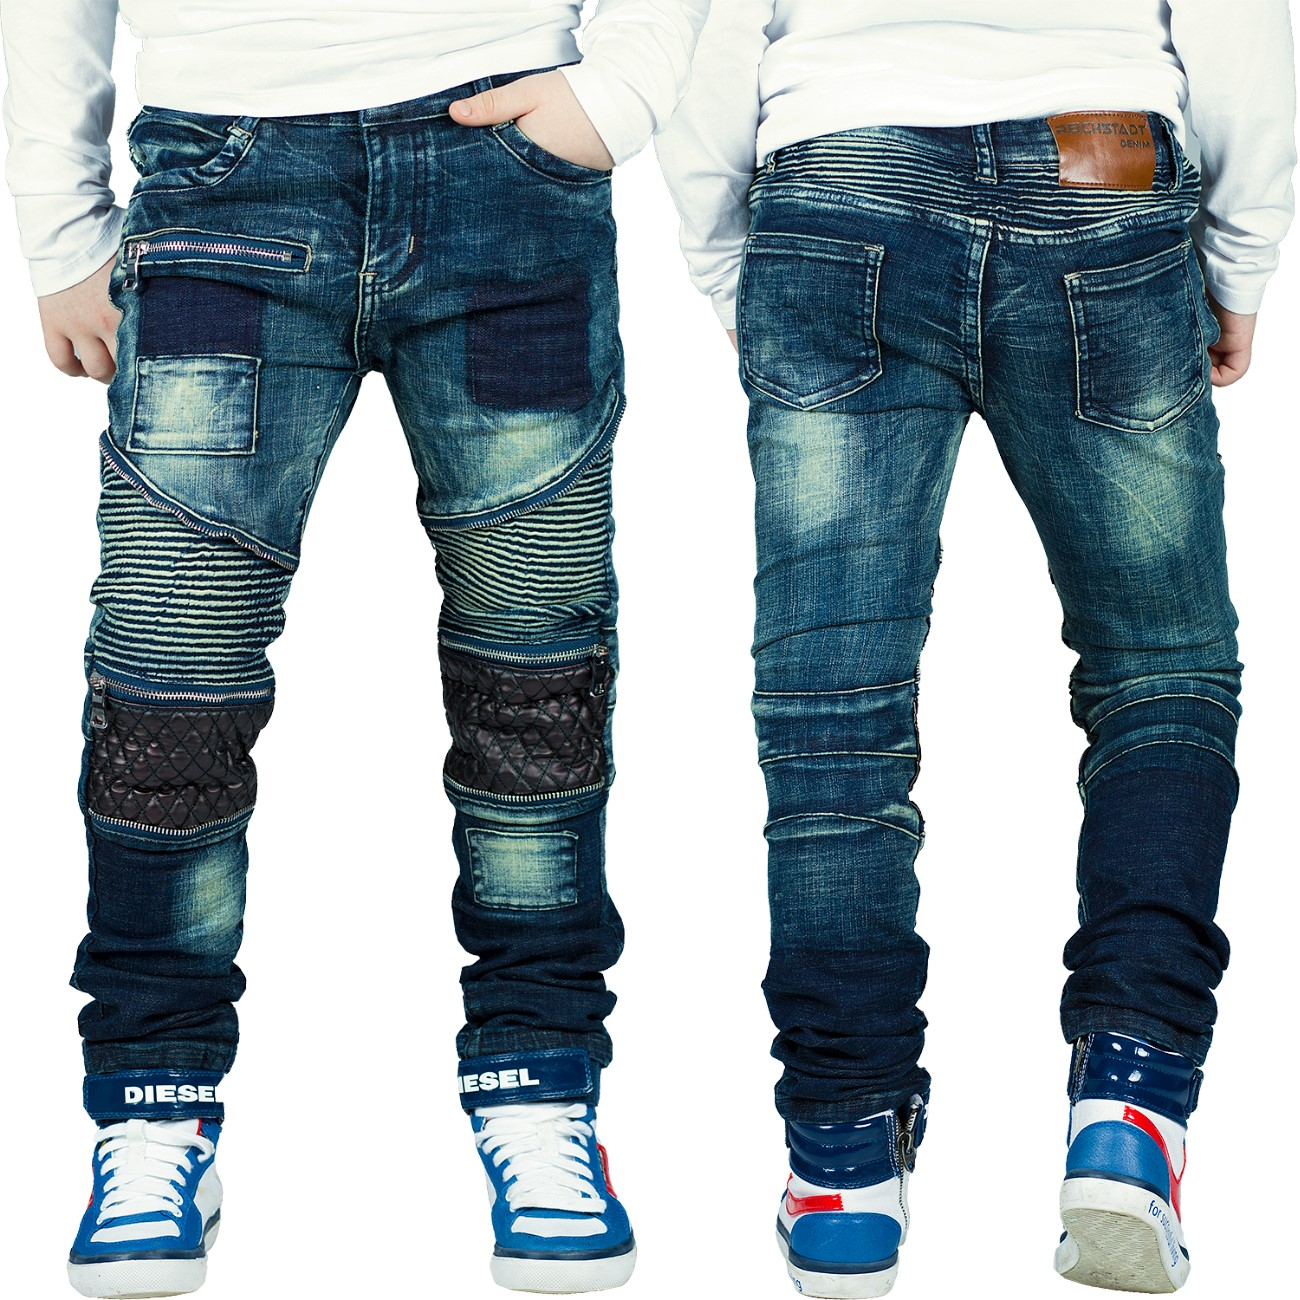 reichstadt jungen kinder hosen jeans jogging biker used 6. Black Bedroom Furniture Sets. Home Design Ideas